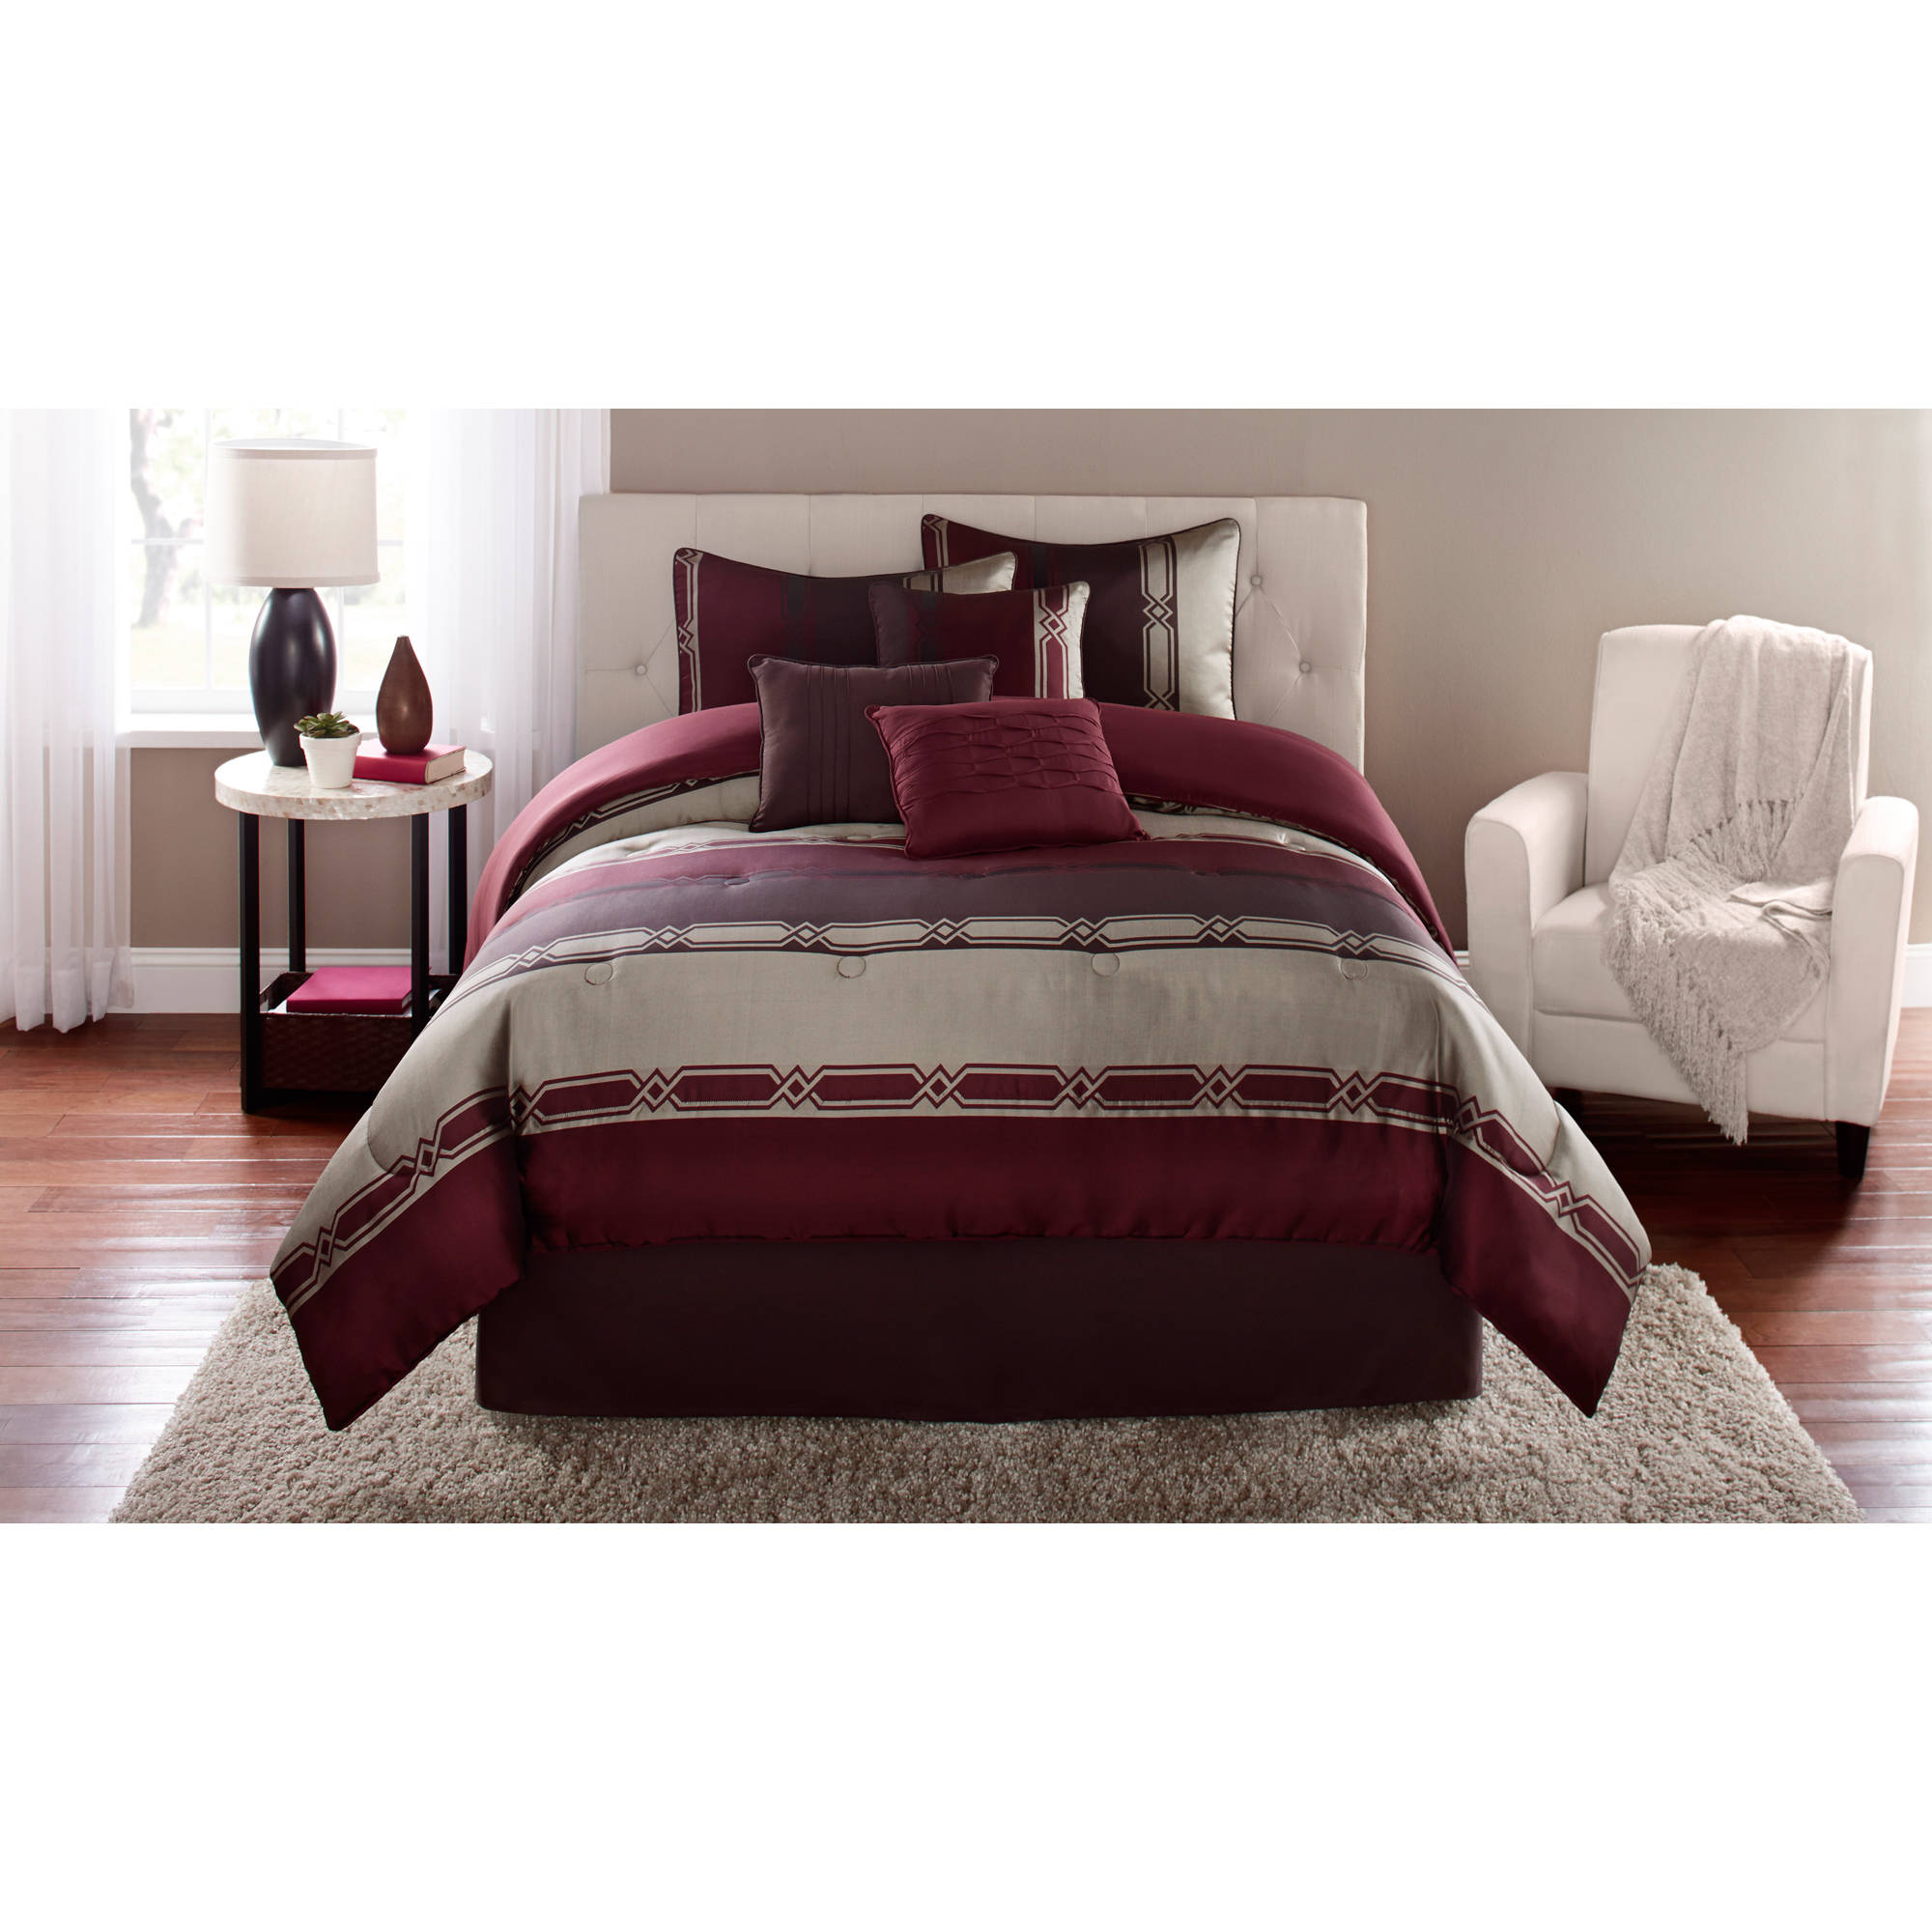 Mainstays Umbridge 7-Piece Bedding Comforter Set, Red